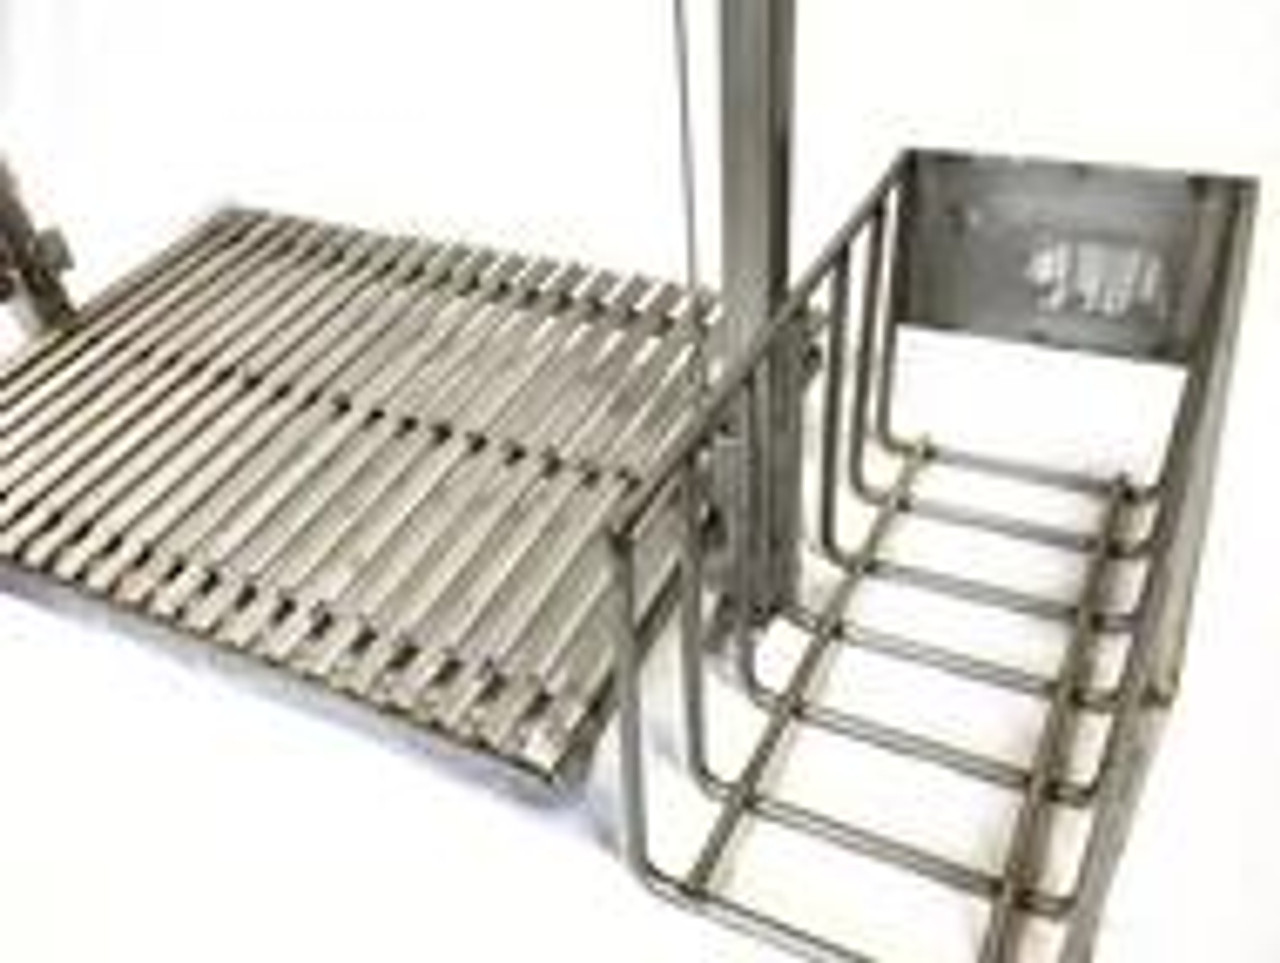 Stainless Steel Masonry Grill Kits with Side Brasero and No Flange